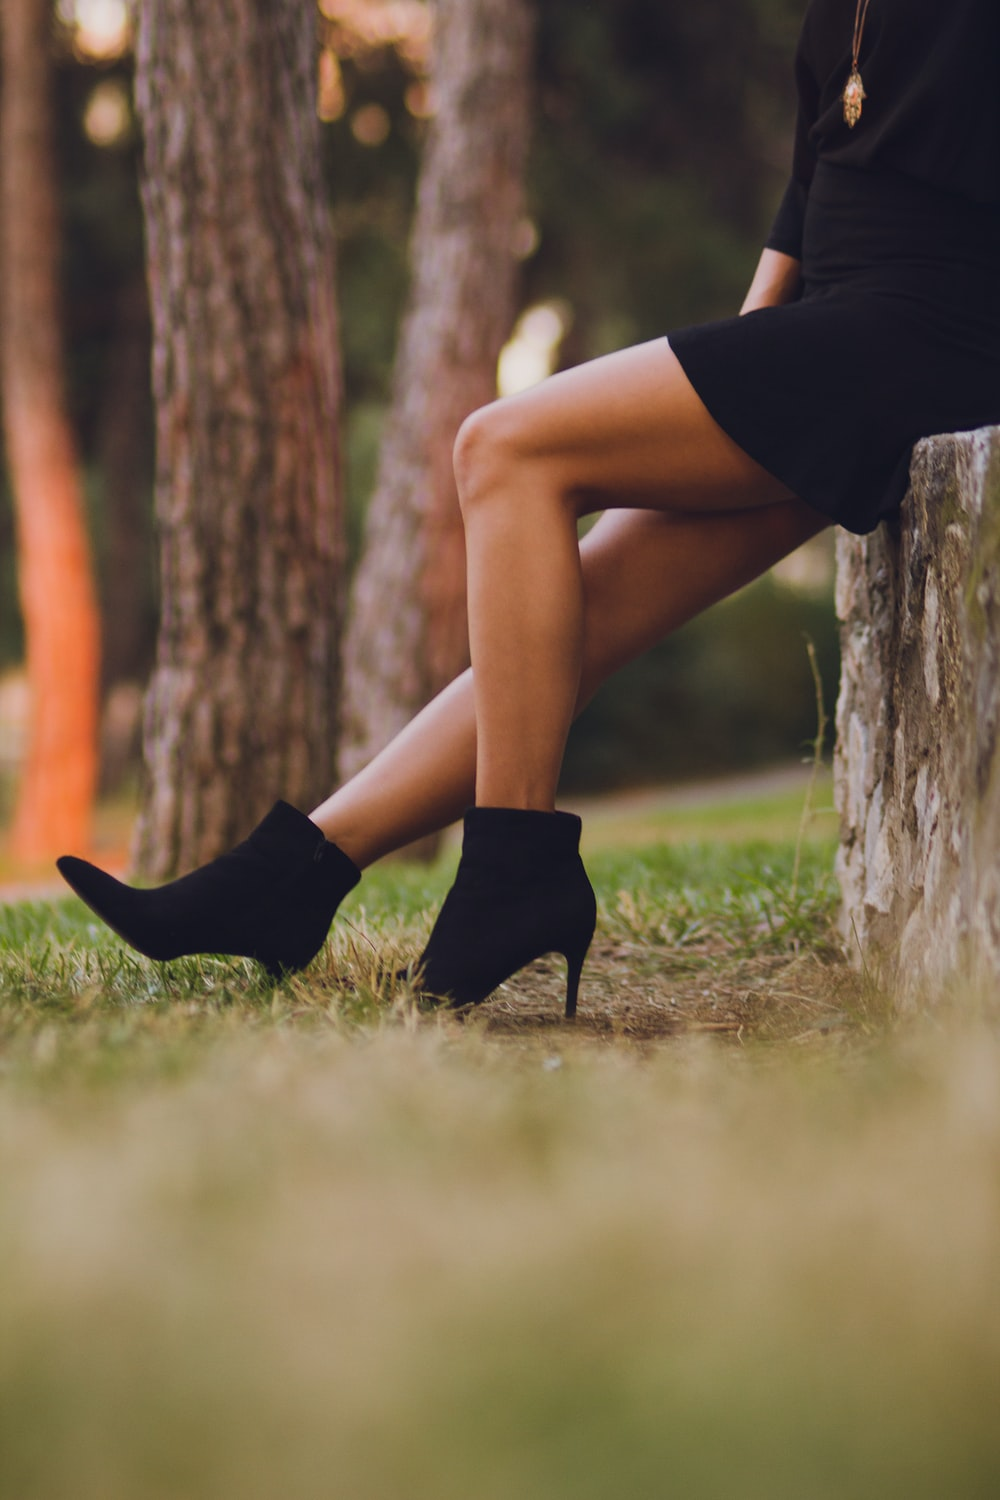 shallow focus photo of person in black booties